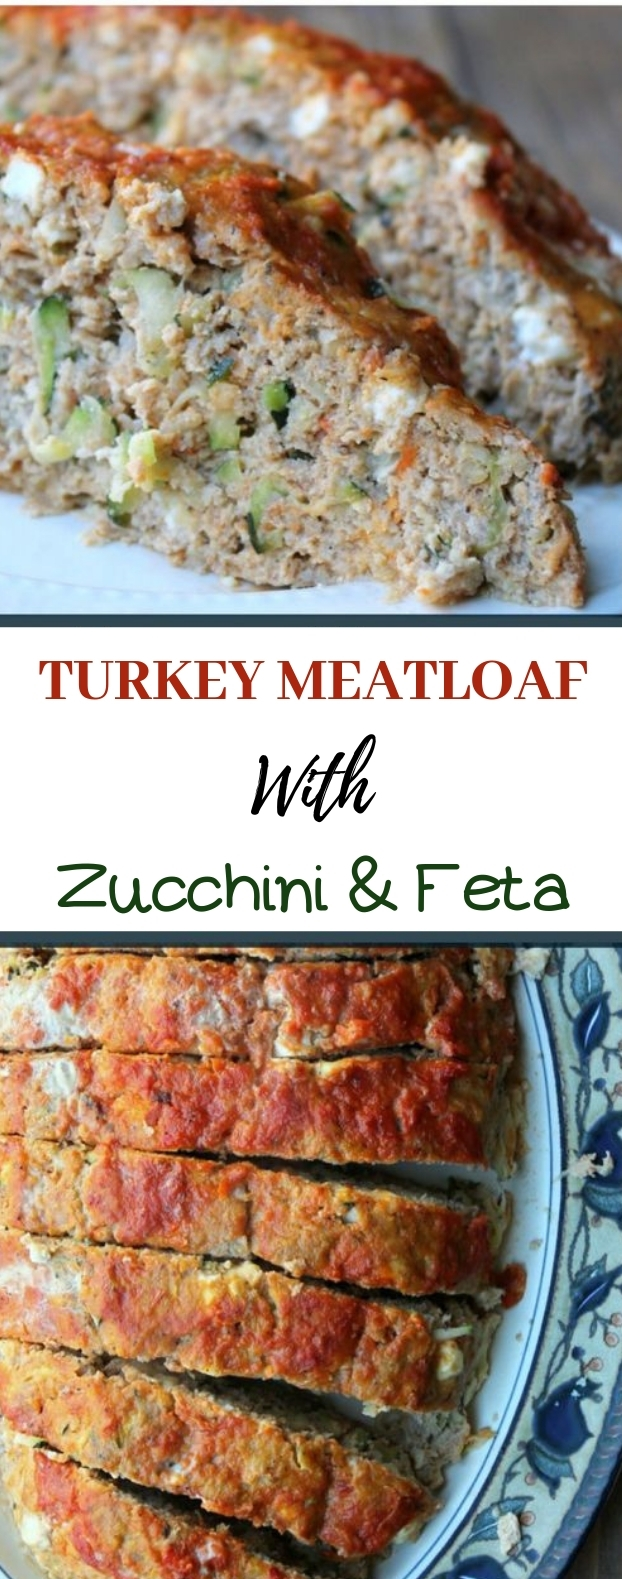 Turkey Meatloaf with Zucchini and Feta #meatloaf #healthy